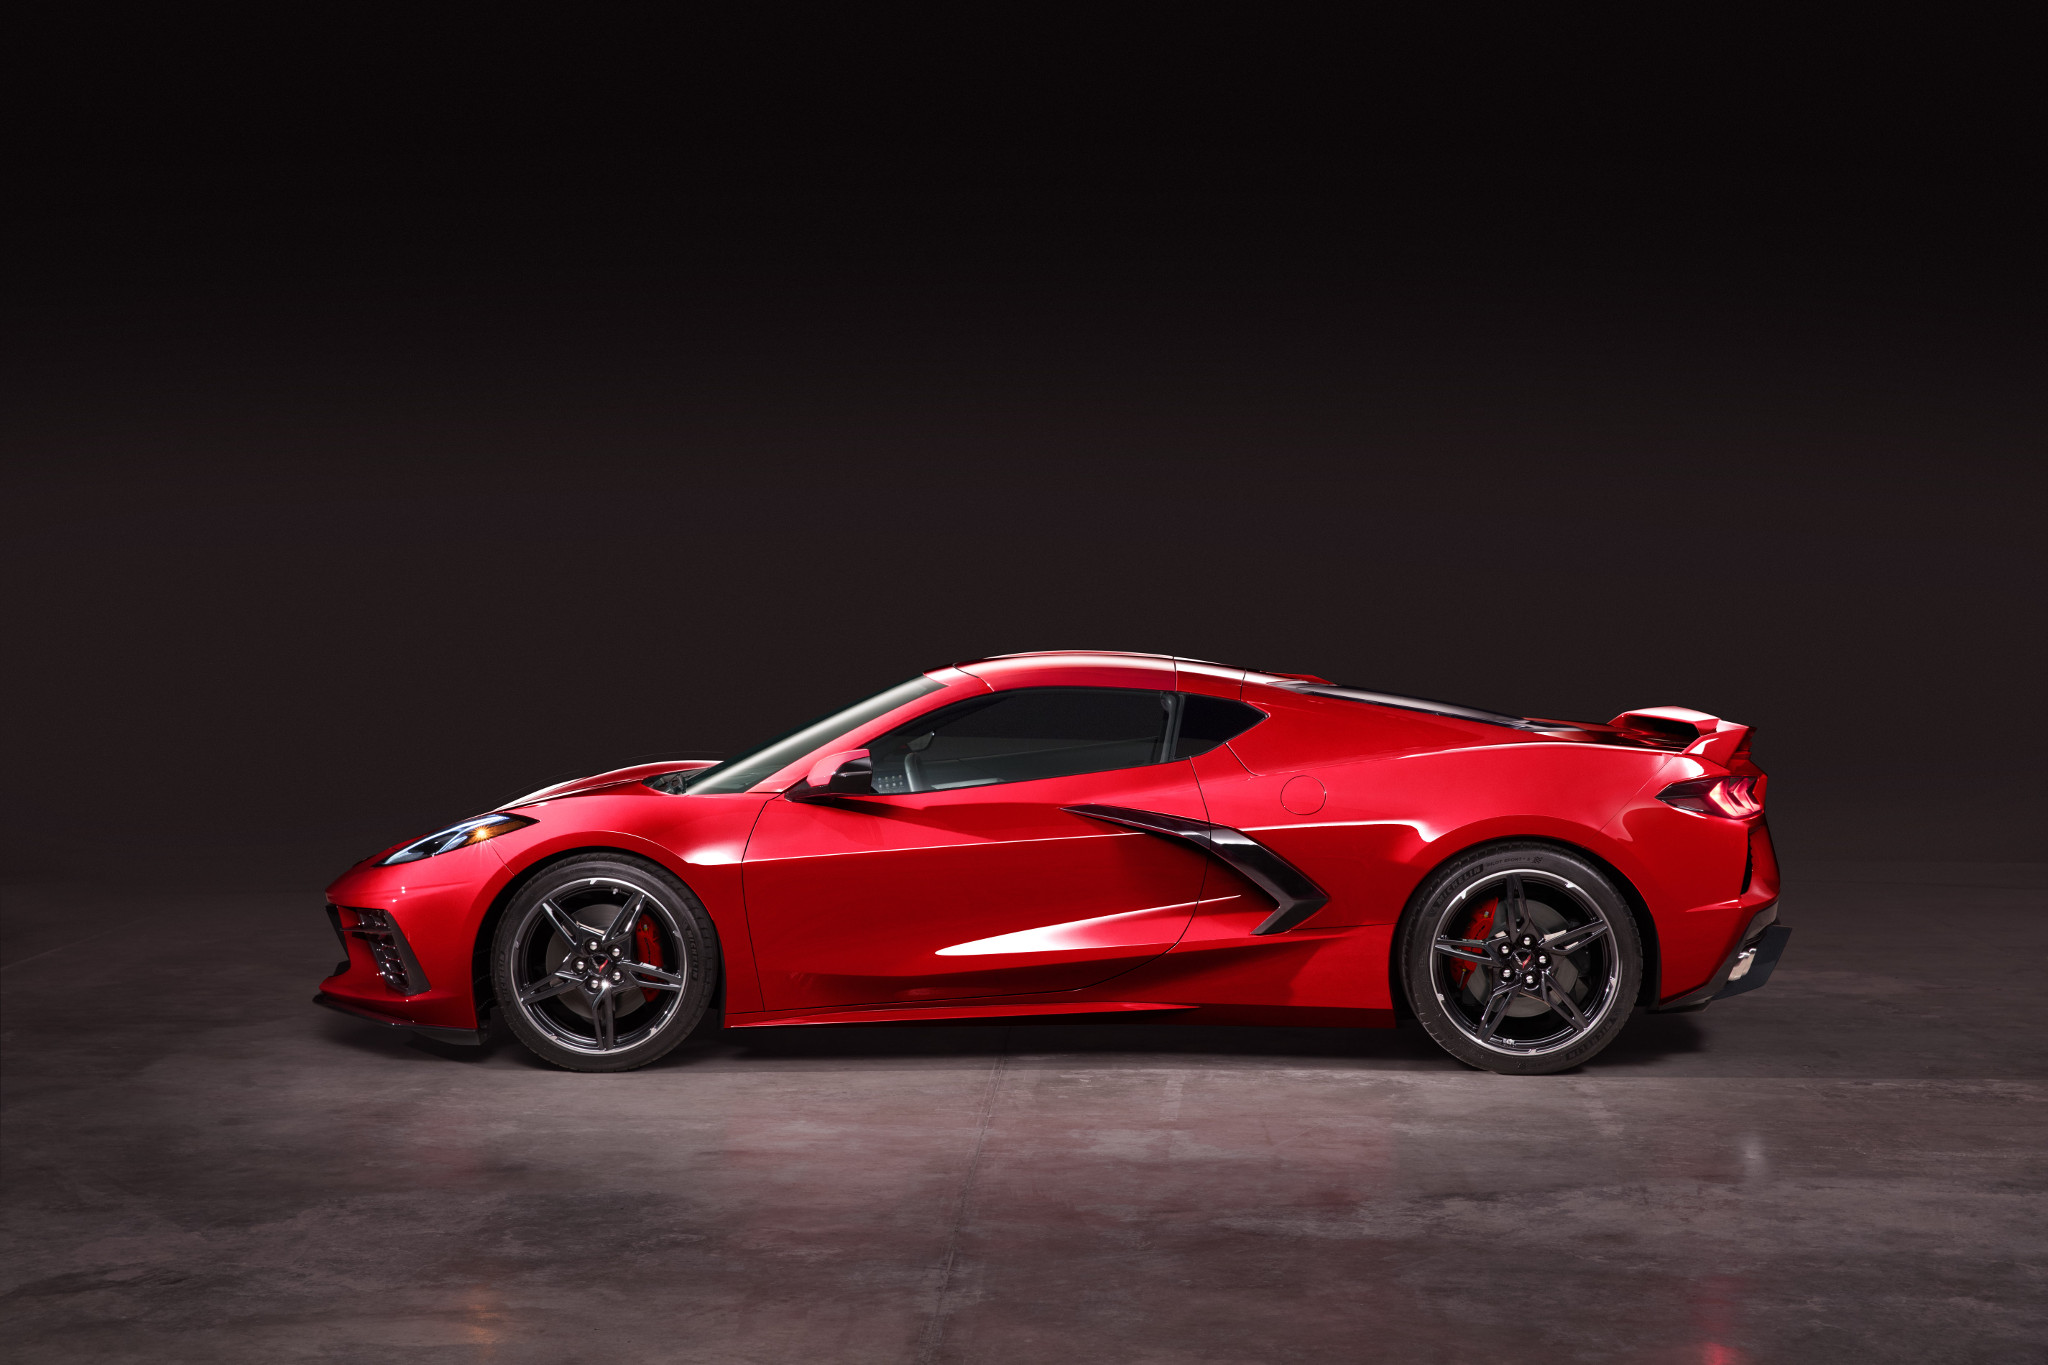 2020 Chevrolet Corvette Stingray: 8 Fast Facts About the Fastest Vette of All Time | News | Cars.com